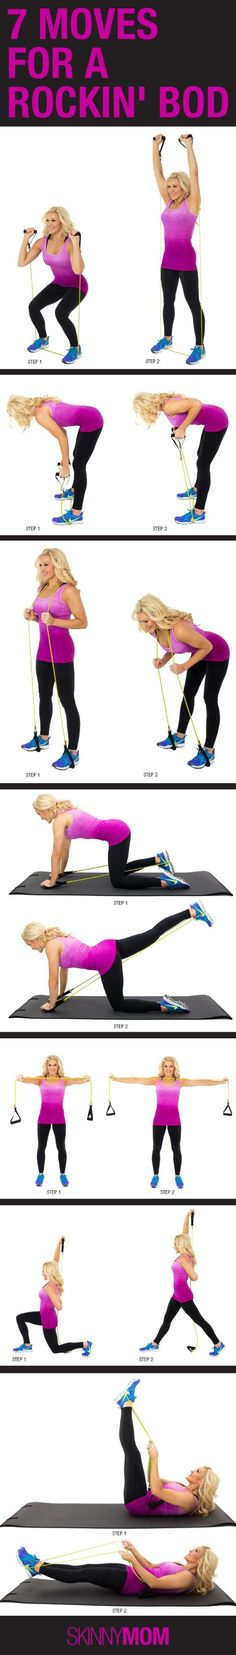 Looks like some good resistance band exercises which would be good while traveling with no weights.